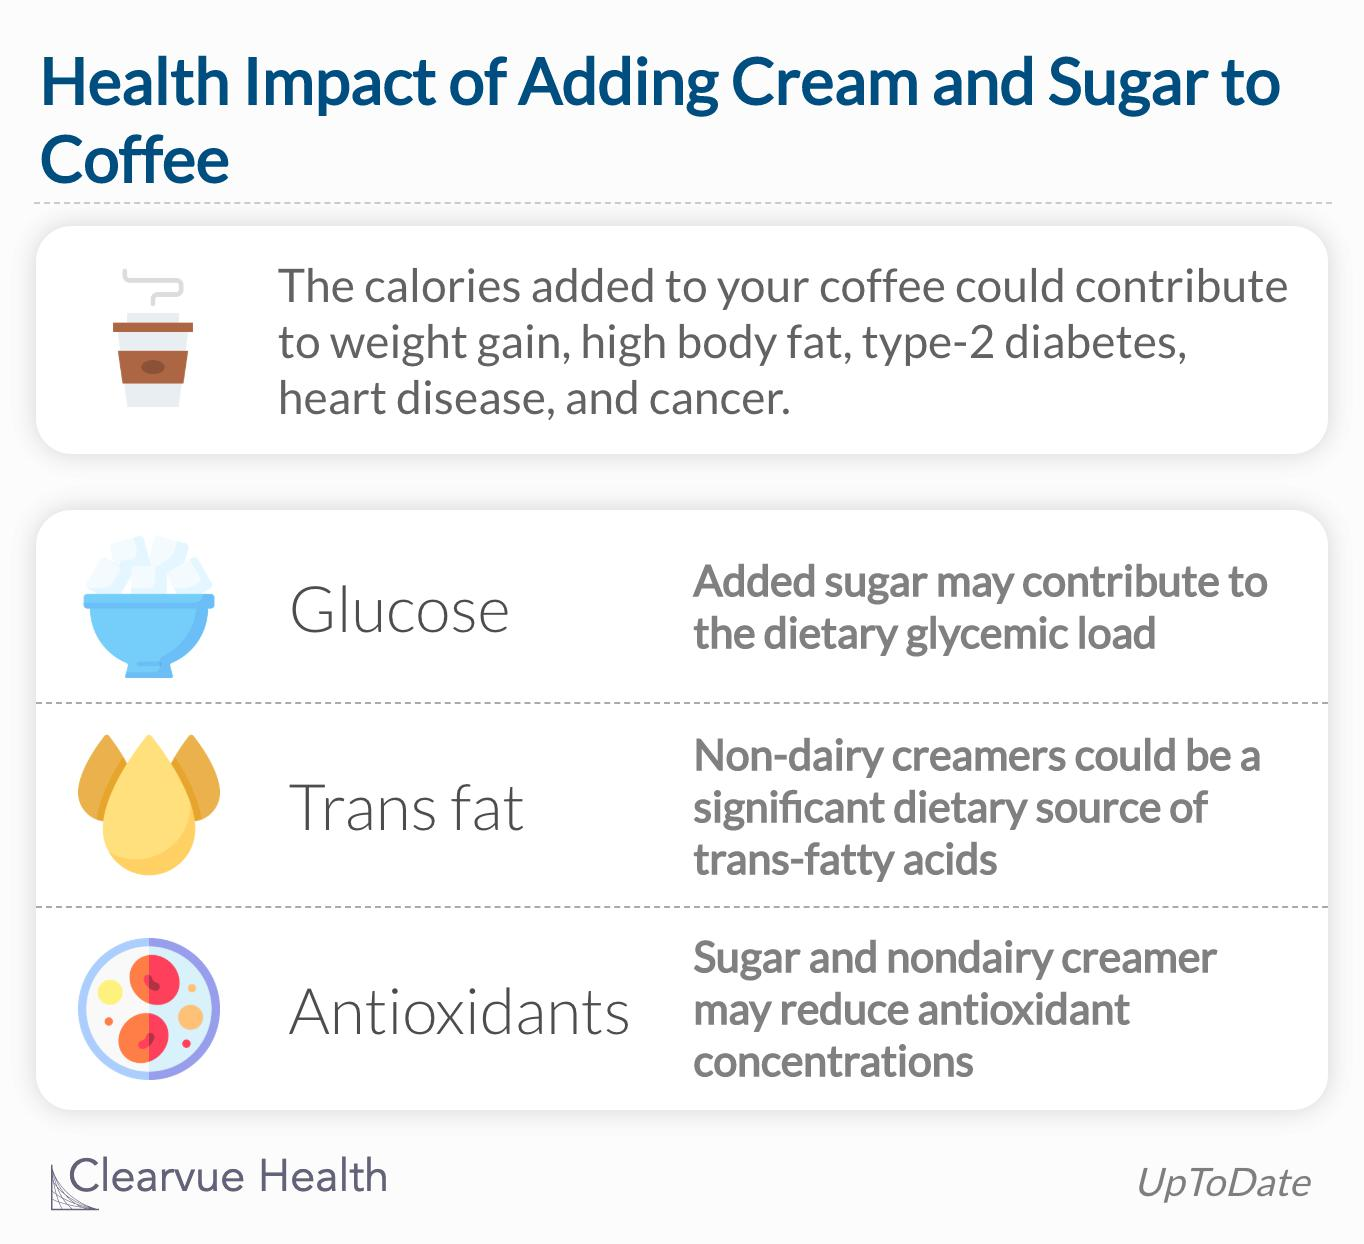 Adding cream and sugar to coffee can cause weight gain and serious conditions like type-2 diabetes and heart disease.